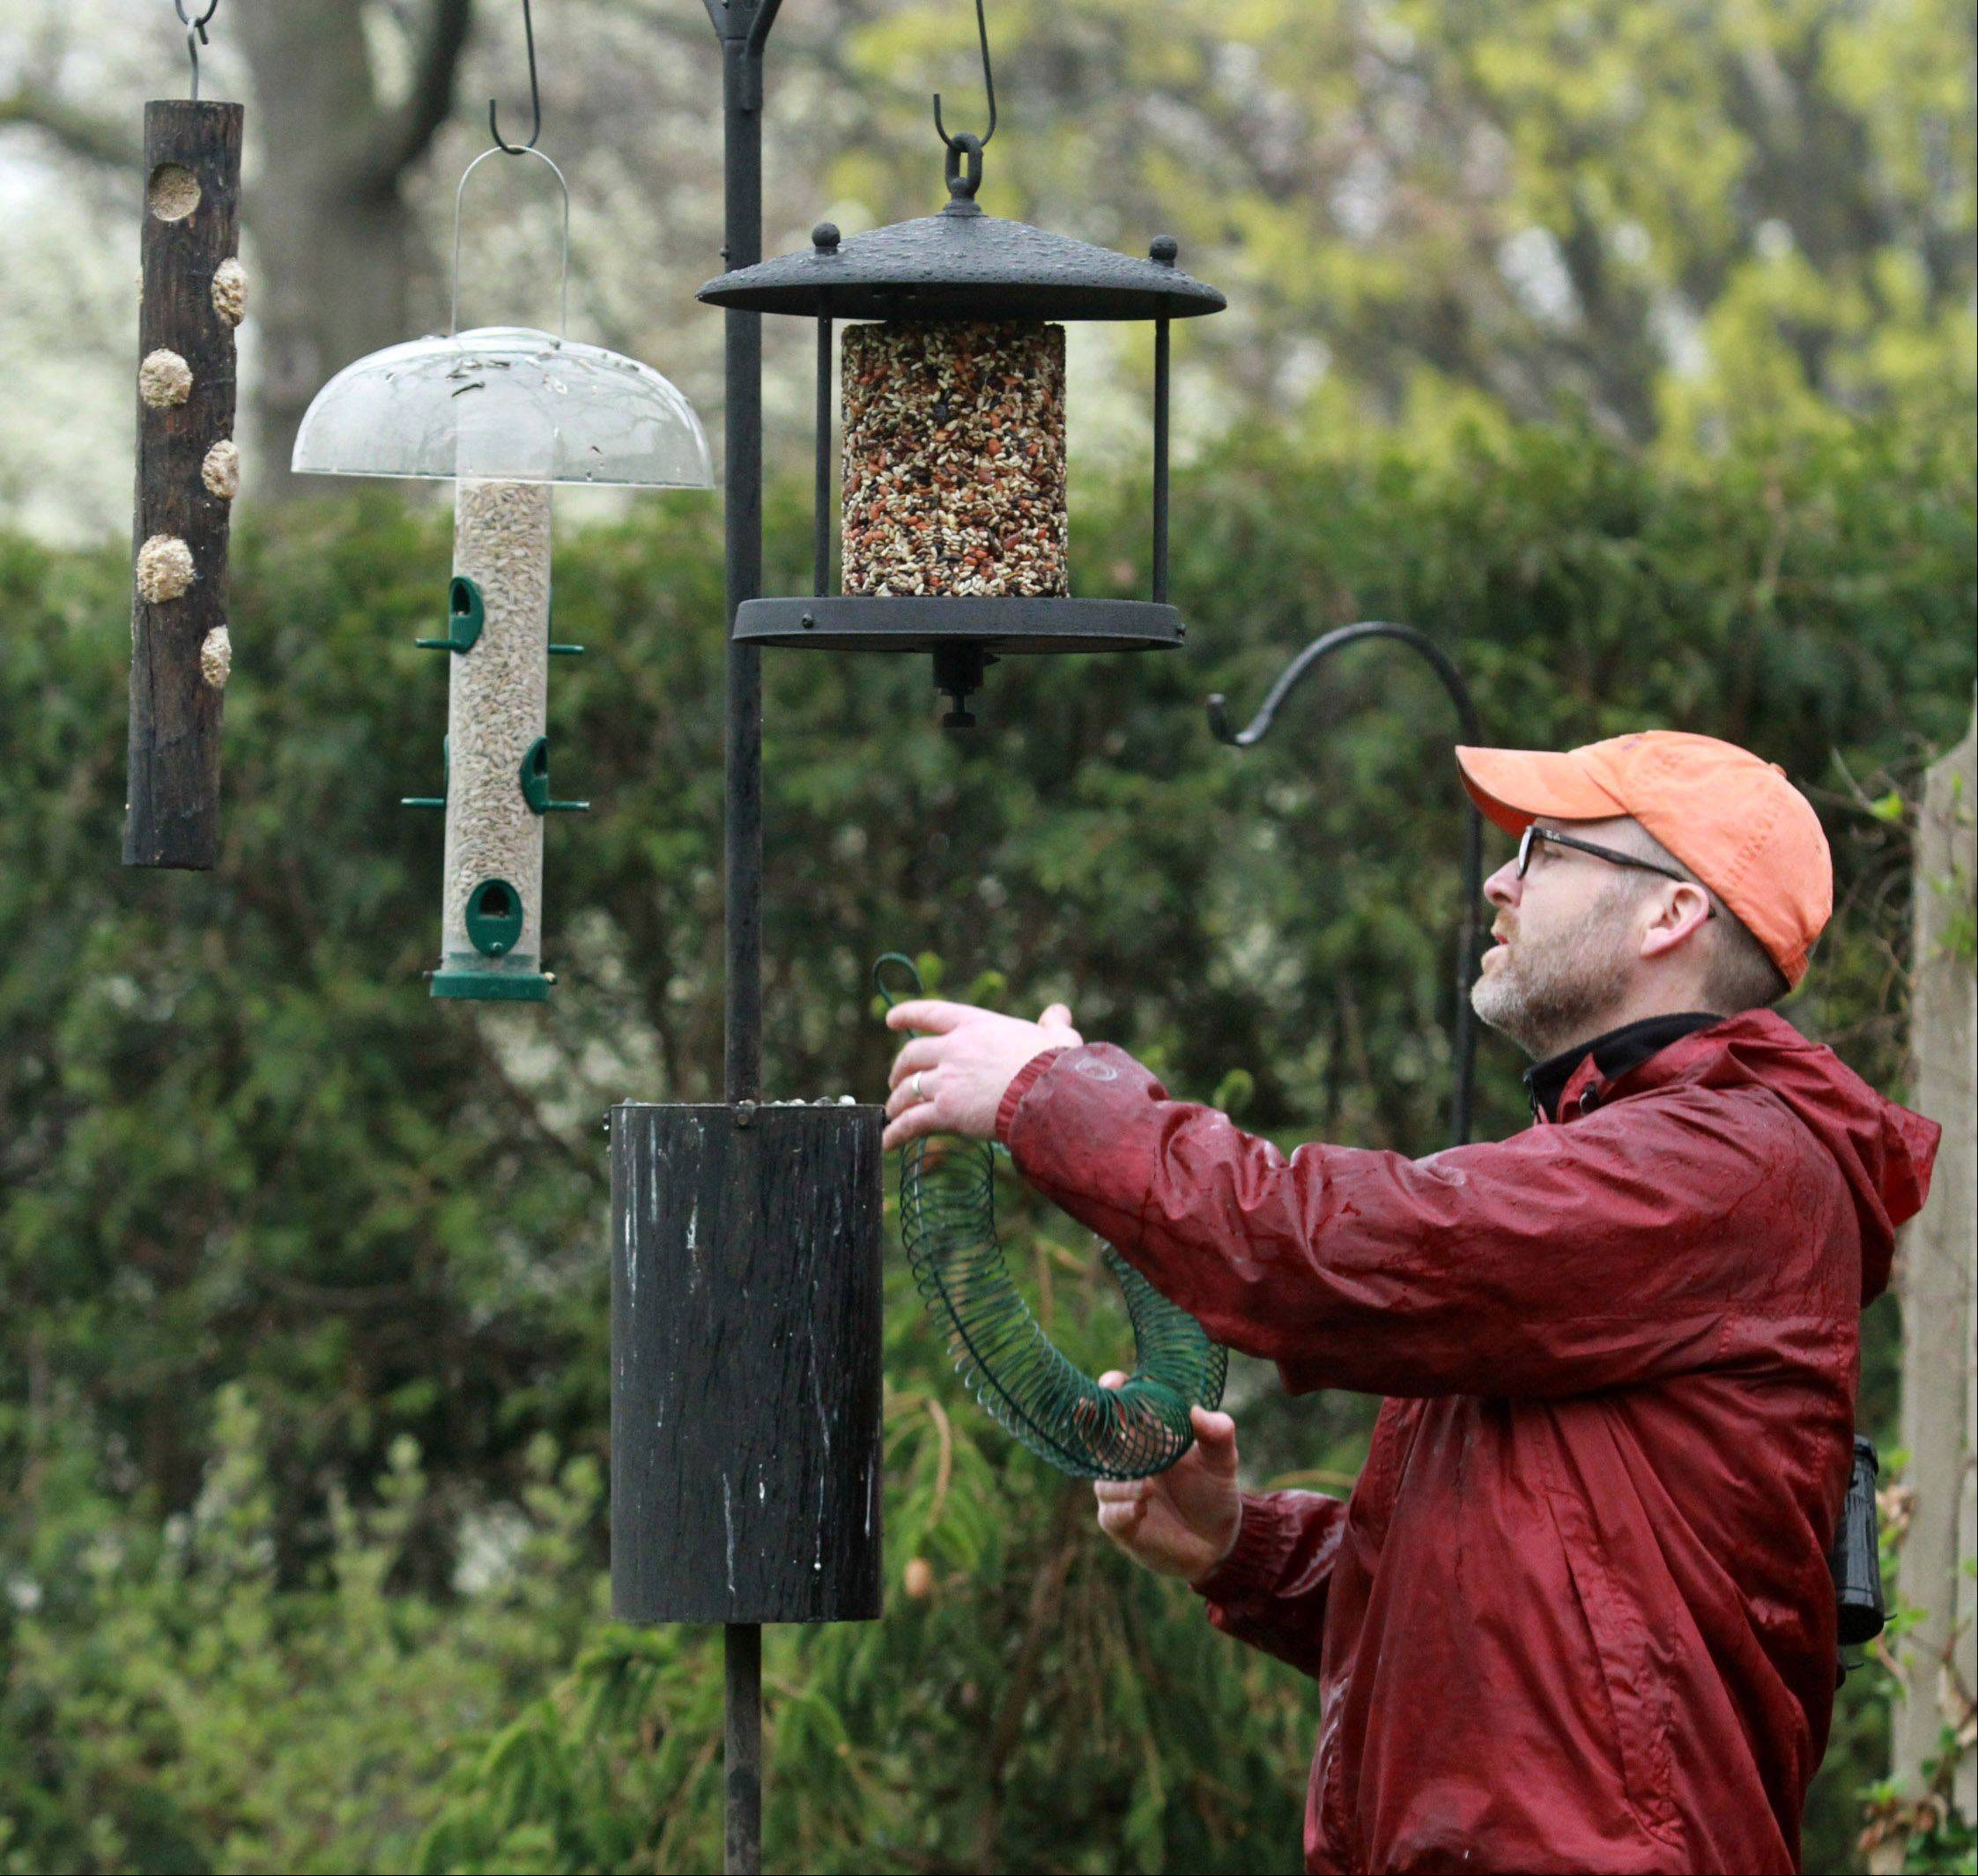 Birdscaper Tim Joyce hangs seed feeders he filled on an advanced pole system in Darlene Schuff's backyard in Highland Park.